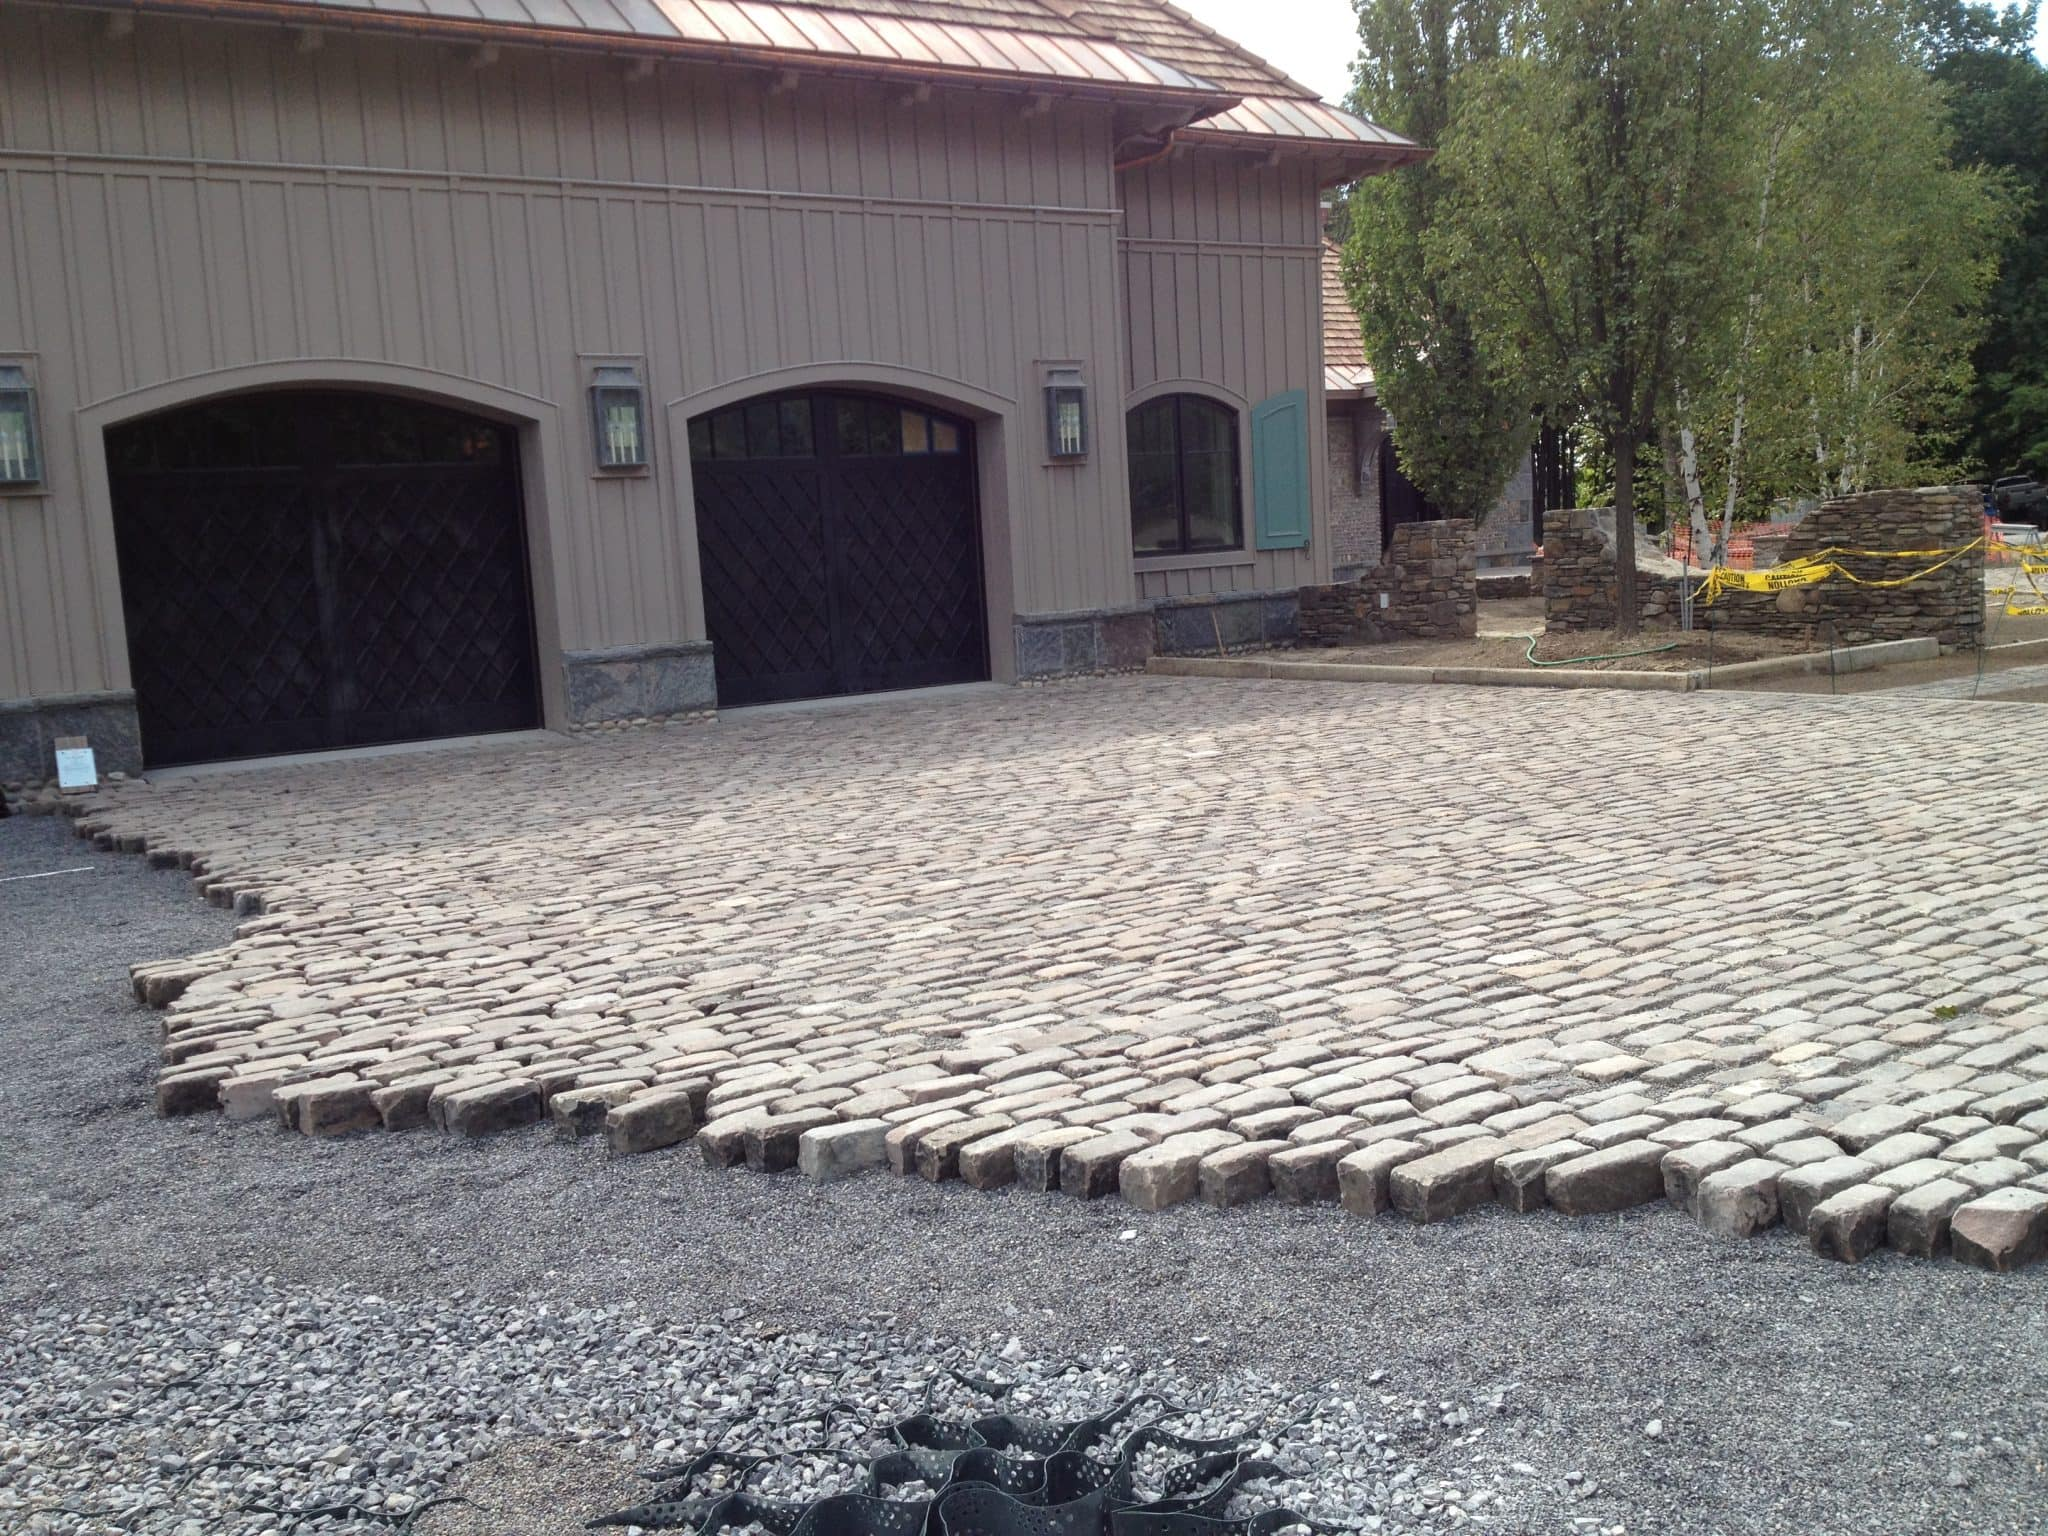 You can see a warehouse type of structure with an Old English Cobblestone paved street in-front.